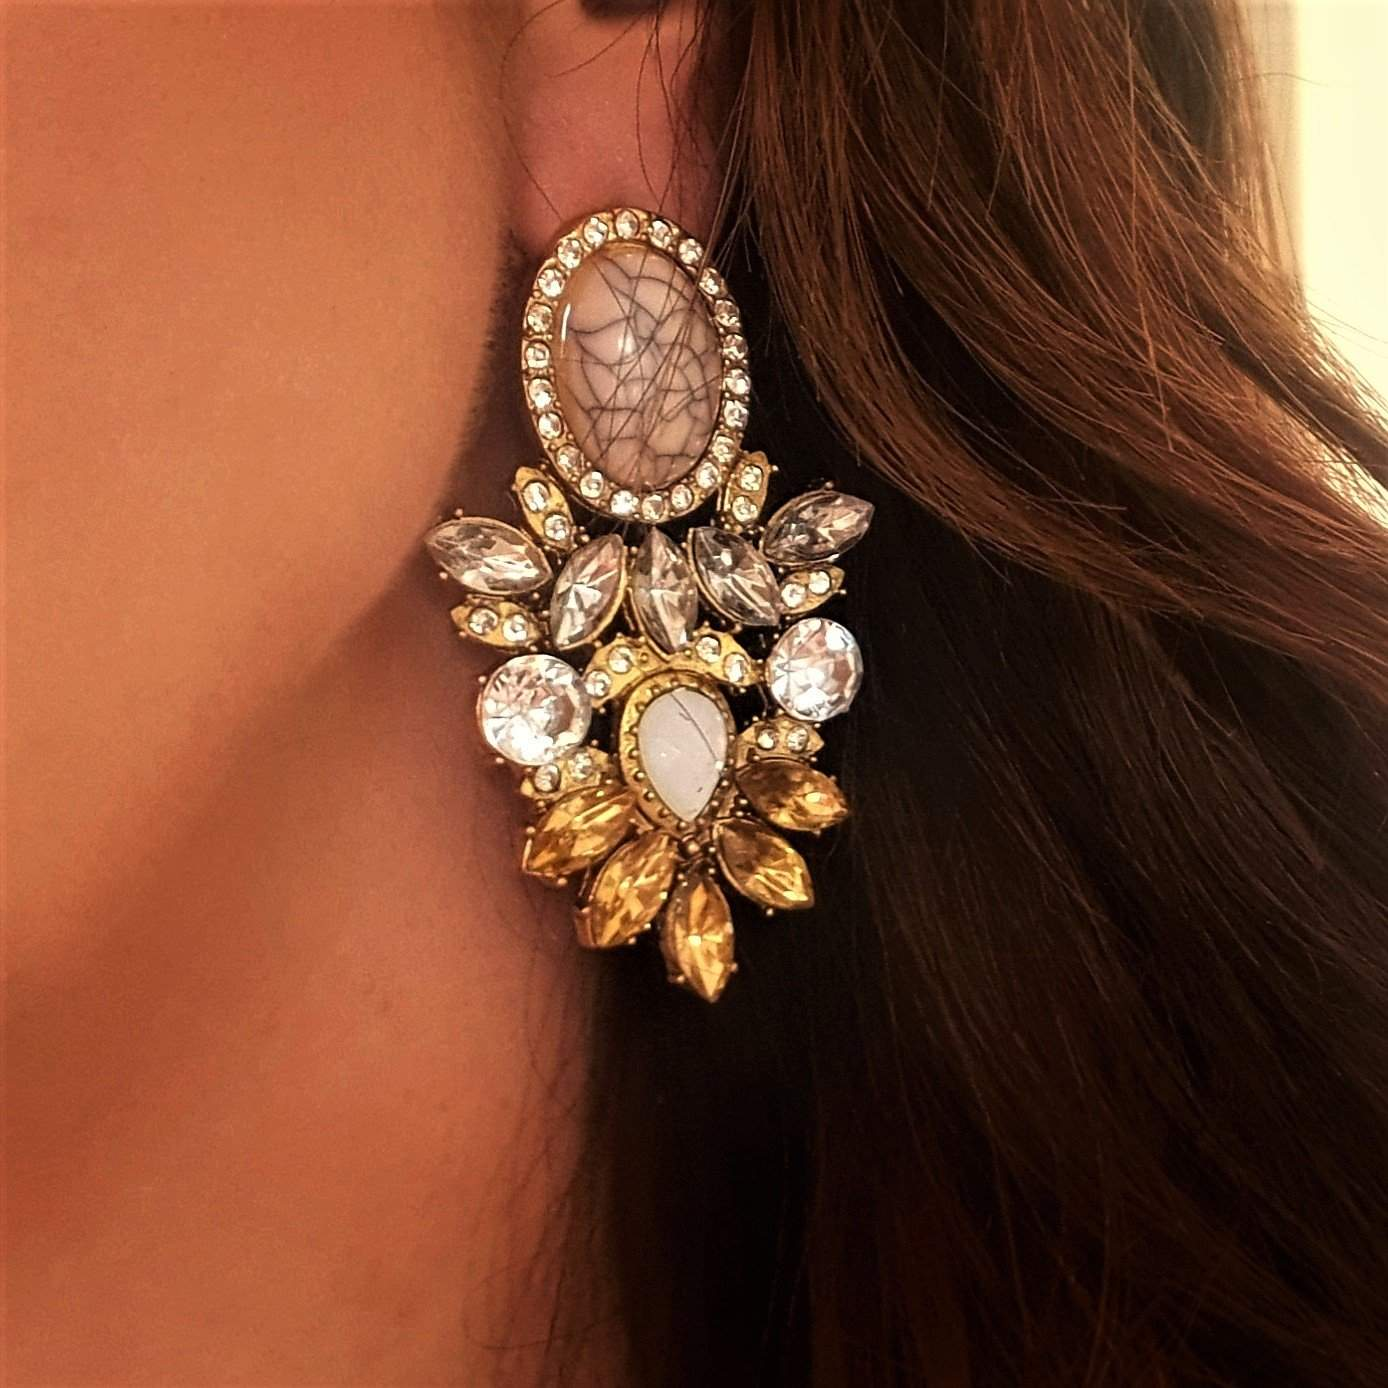 Dramatic statement yellow or champagne crystal earrings-Earrings-Chubby Precious Accessories